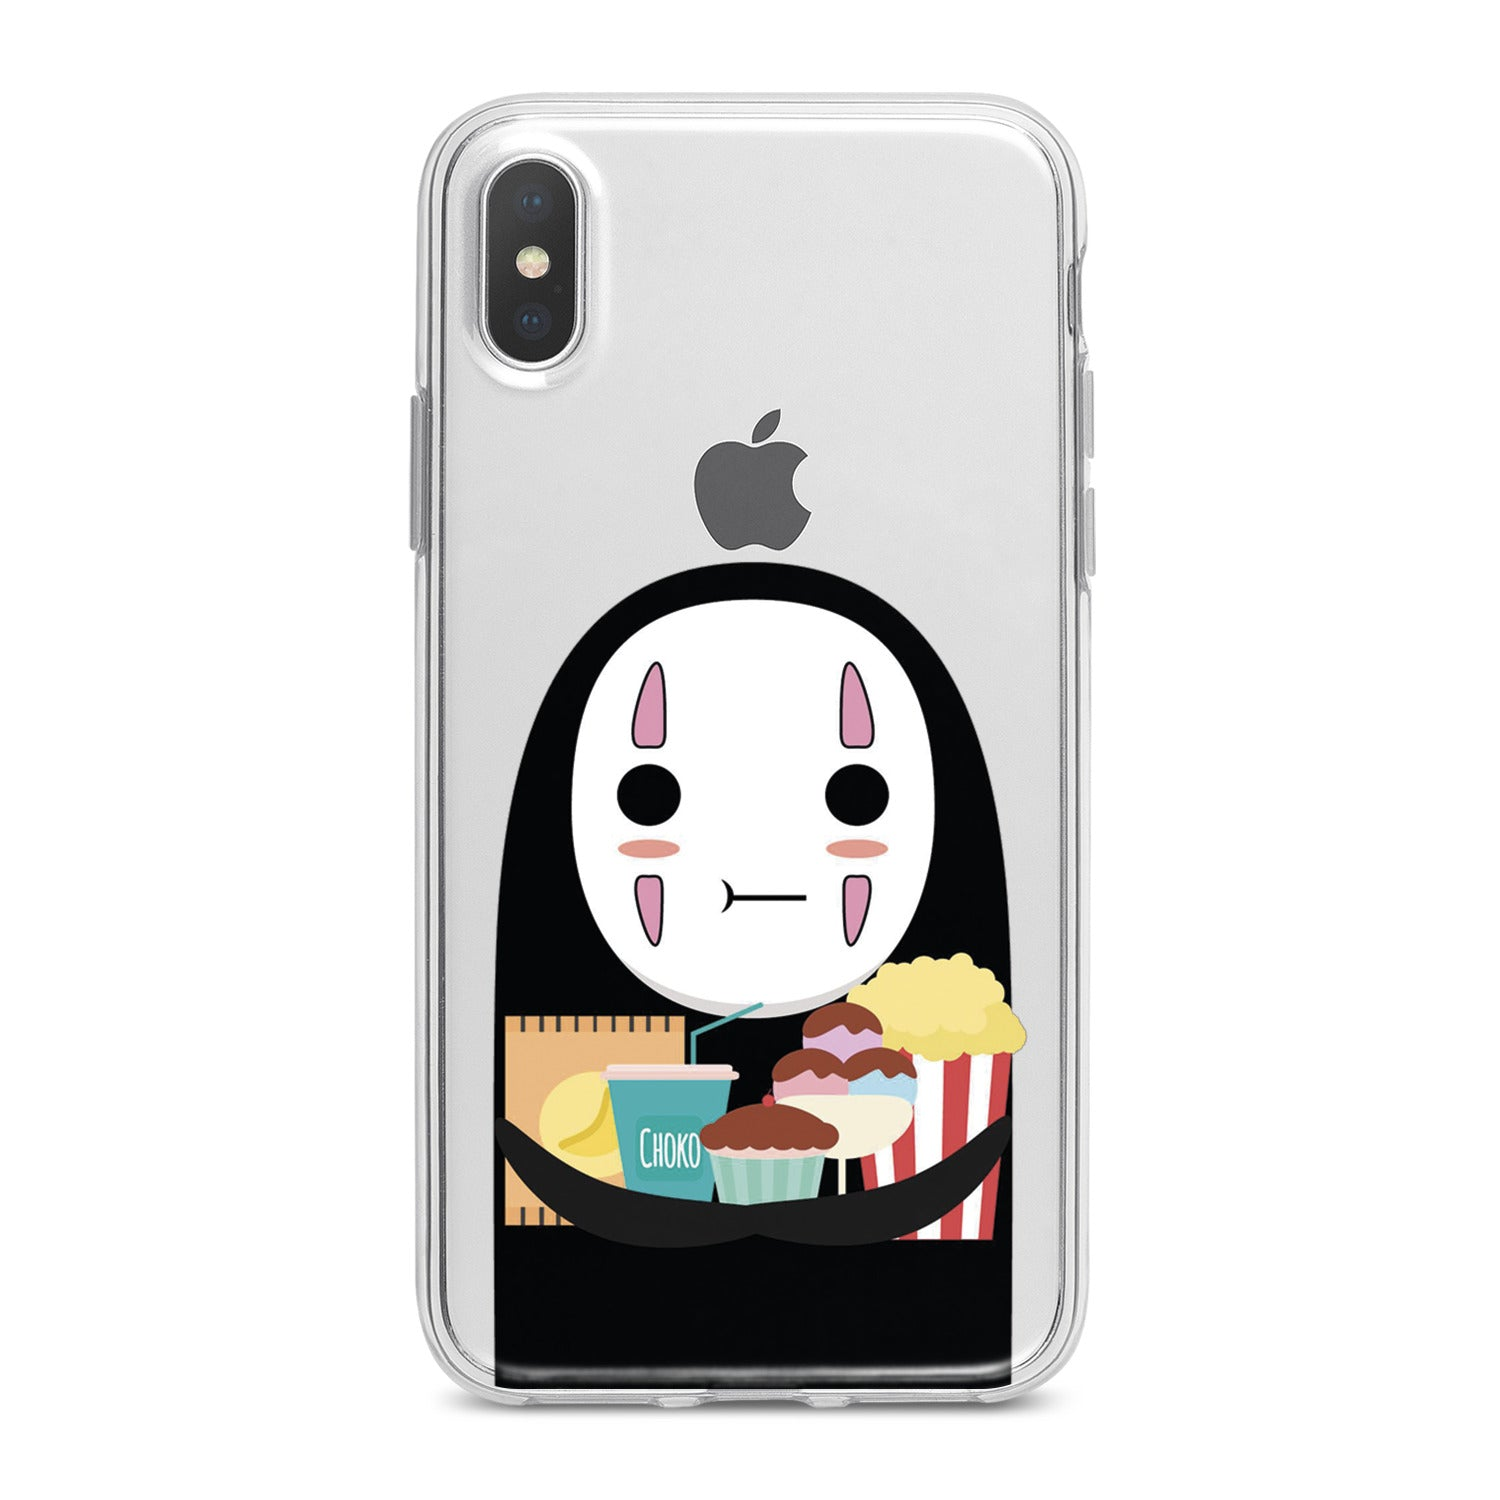 Lex Altern No Face Print Phone Case for your iPhone & Android phone.